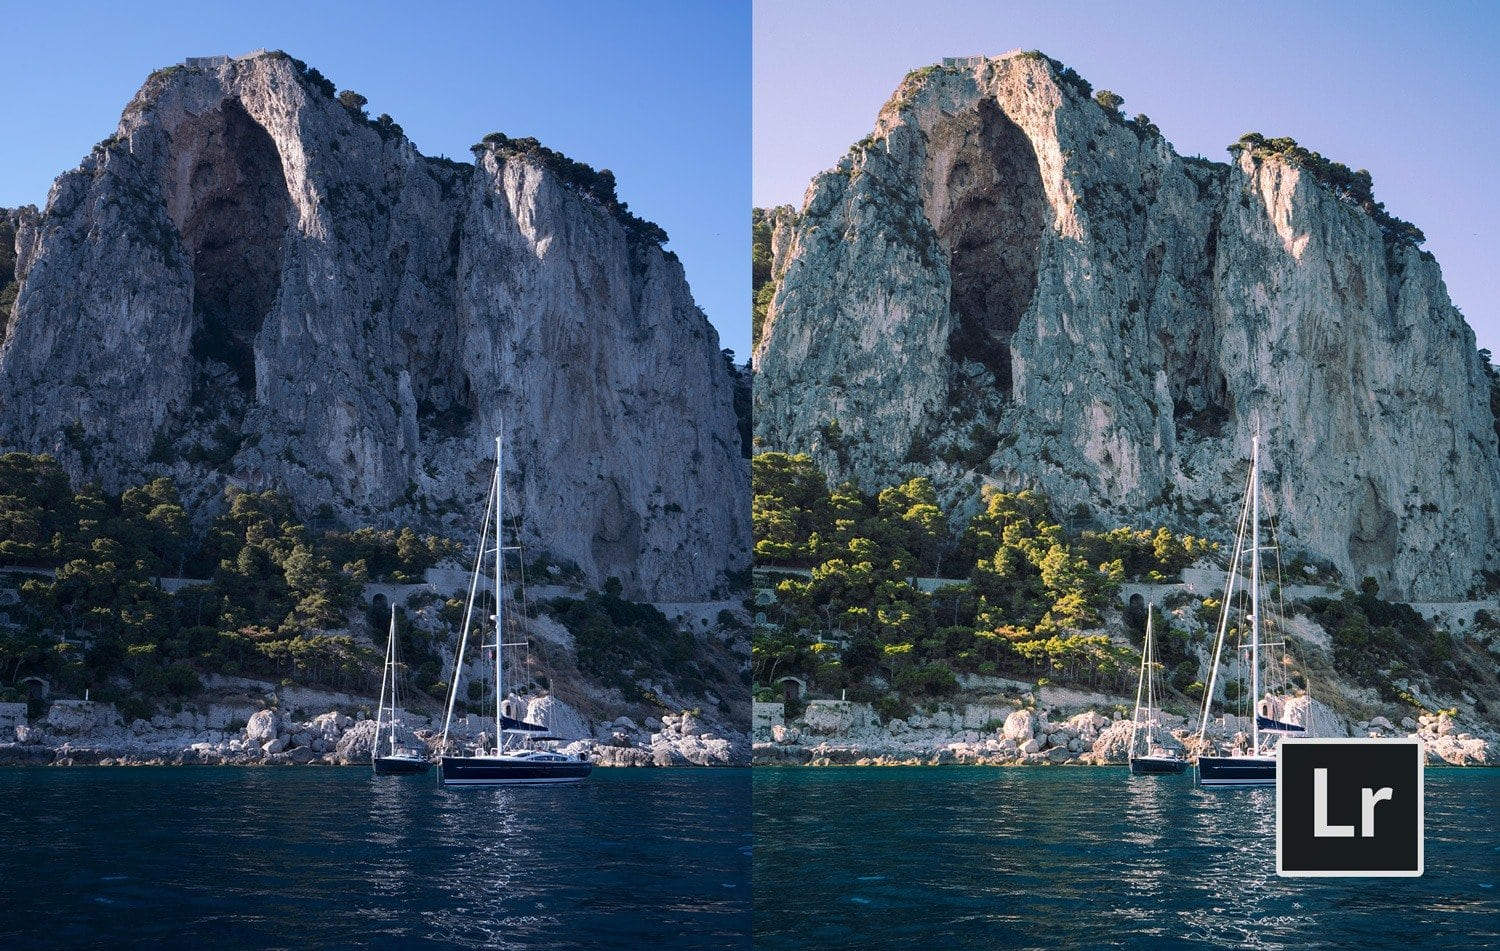 Free Preset Sailboats for Adobe Lightroom - Download Now!